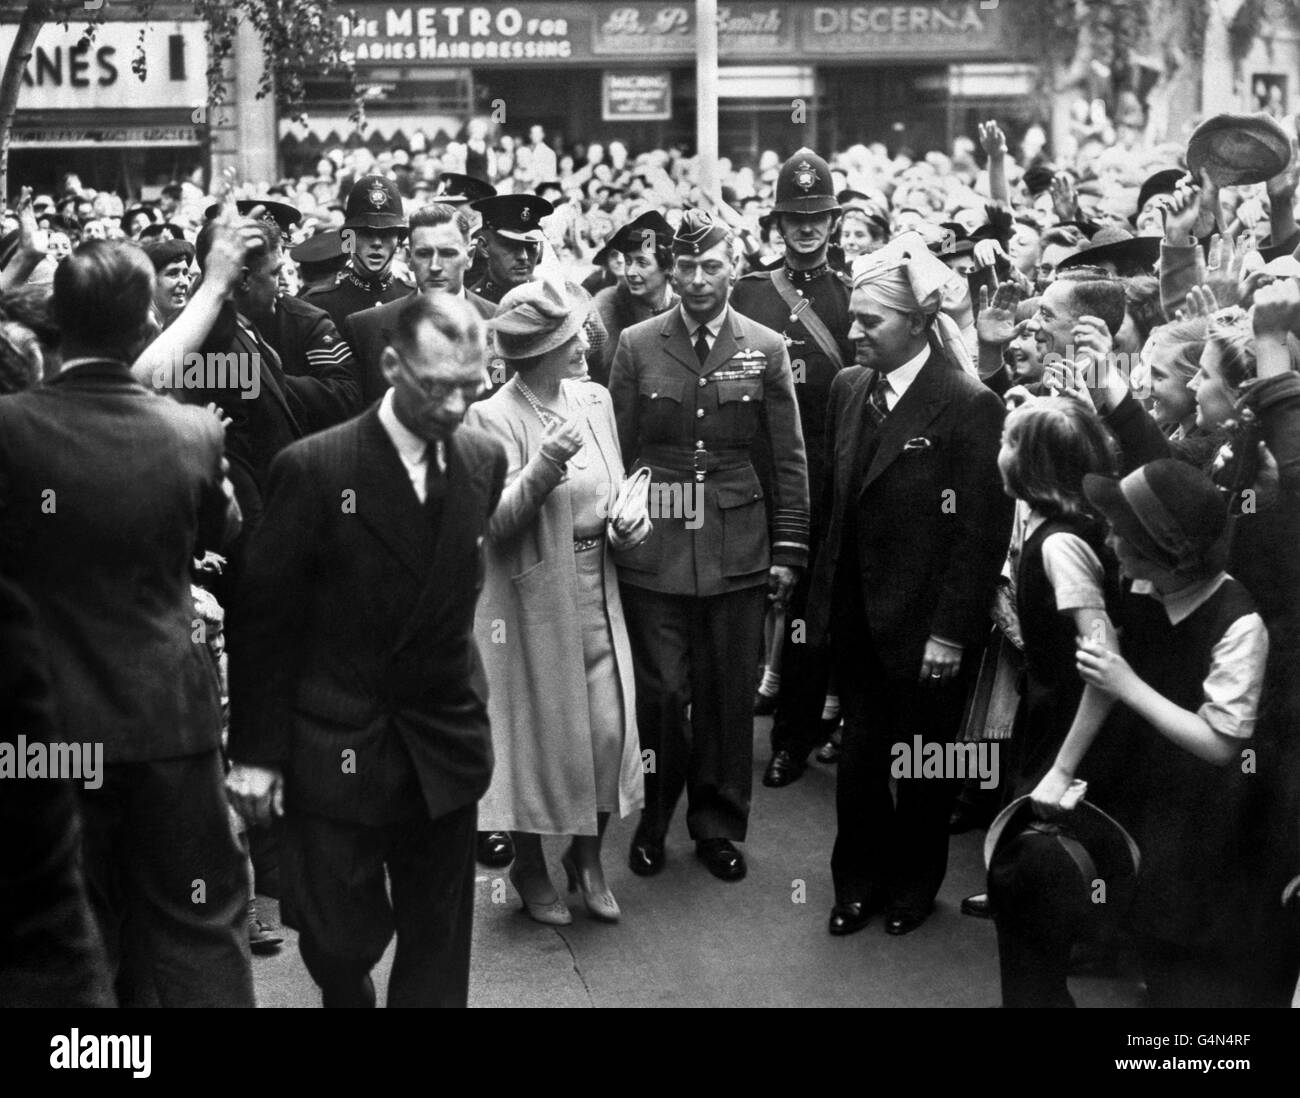 World War Two - UK & Commonwealth - The Home Front - British Royal Family - London - 1941 - Stock Image